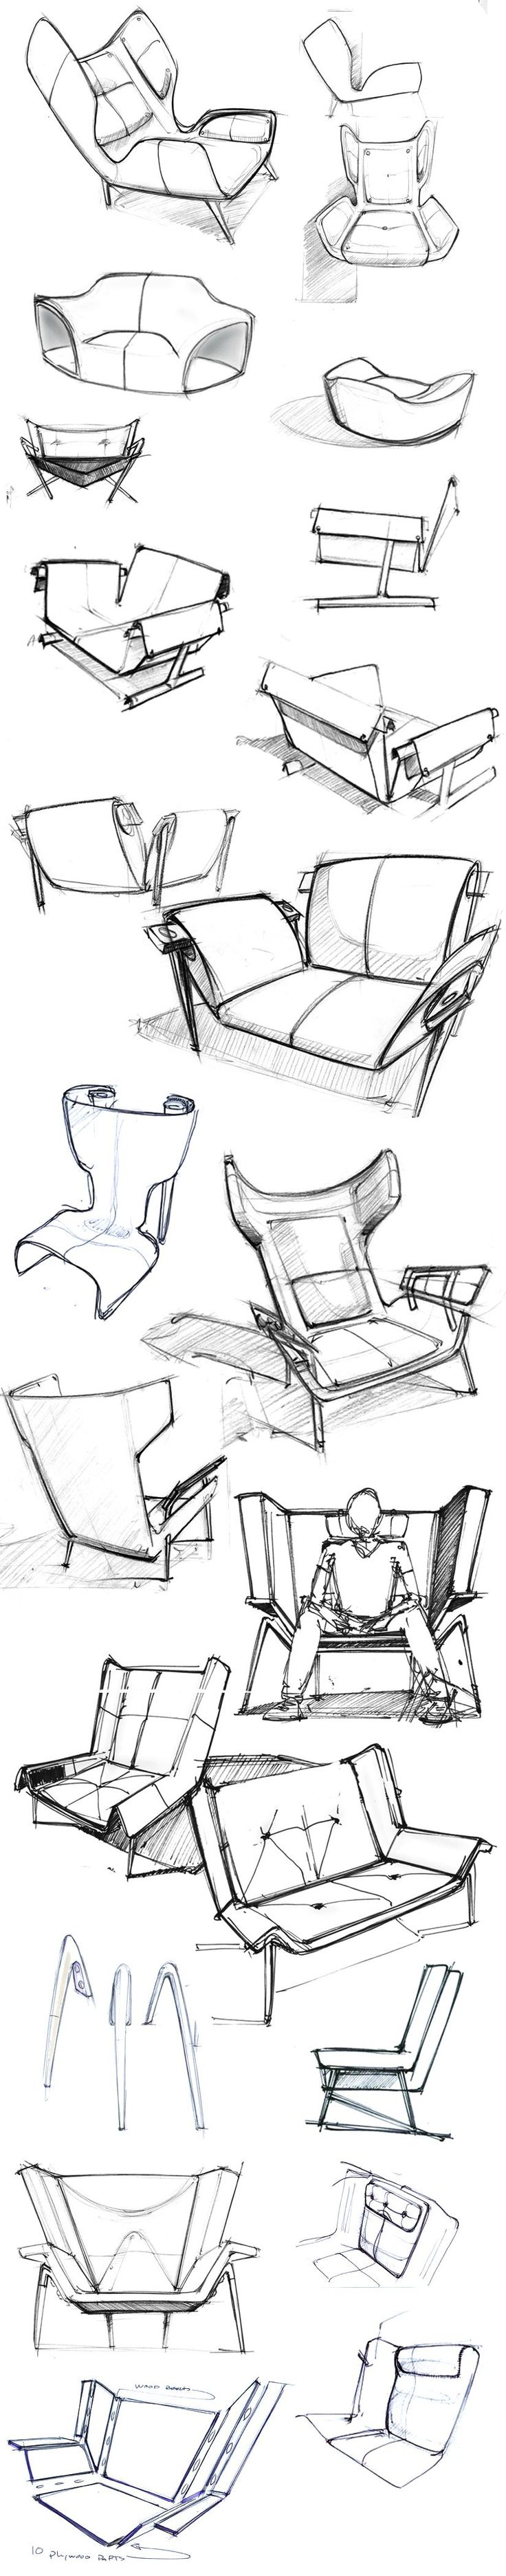 Modern furniture sketches chair sketches - Sketches Of The Deca Lounge Chair By Larry Parker How To Drawing Interior Furniture